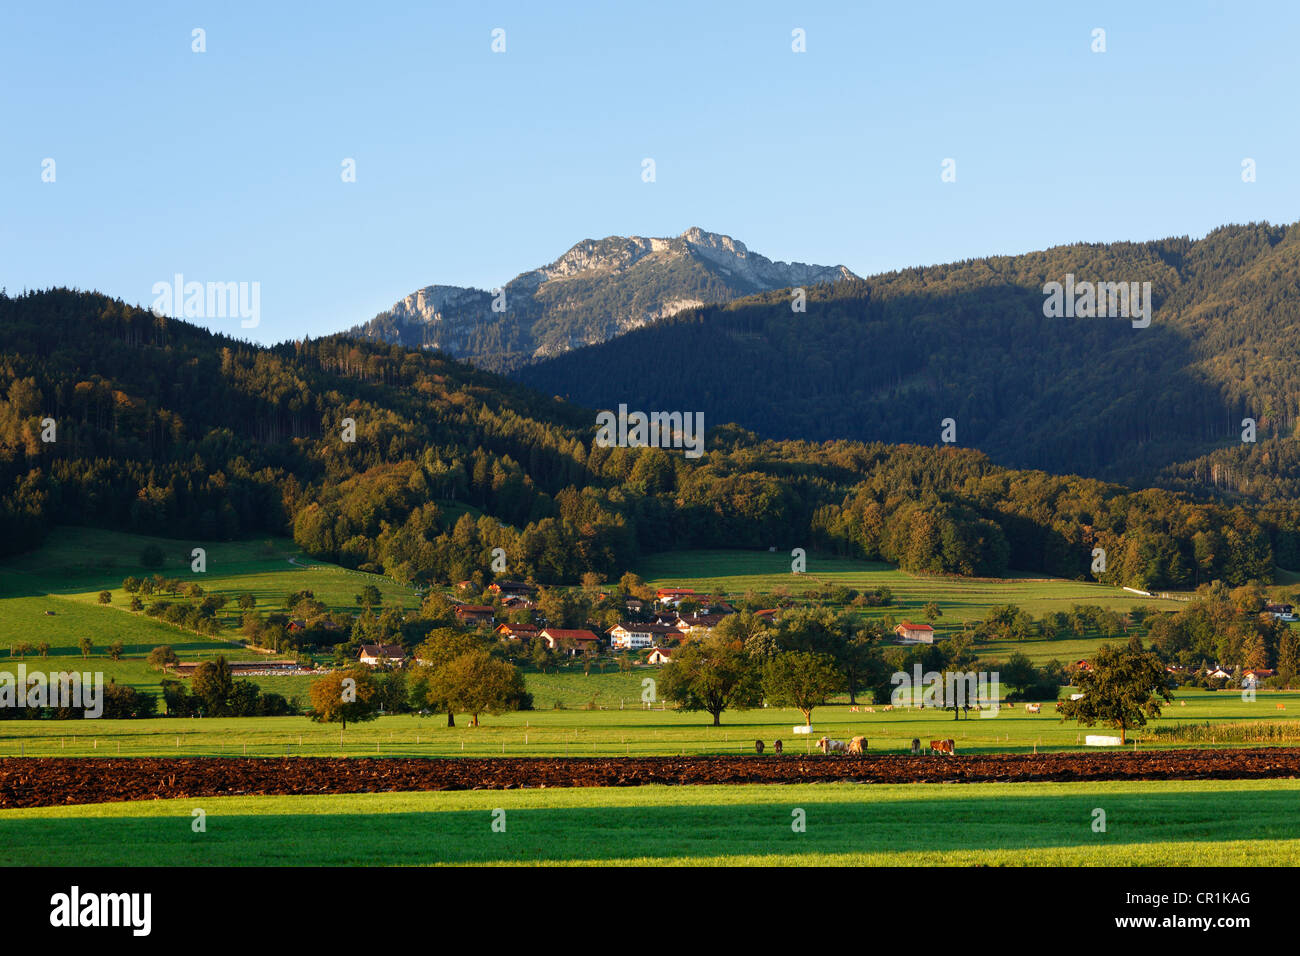 mangfallgebirge stockfotos mangfallgebirge bilder alamy. Black Bedroom Furniture Sets. Home Design Ideas